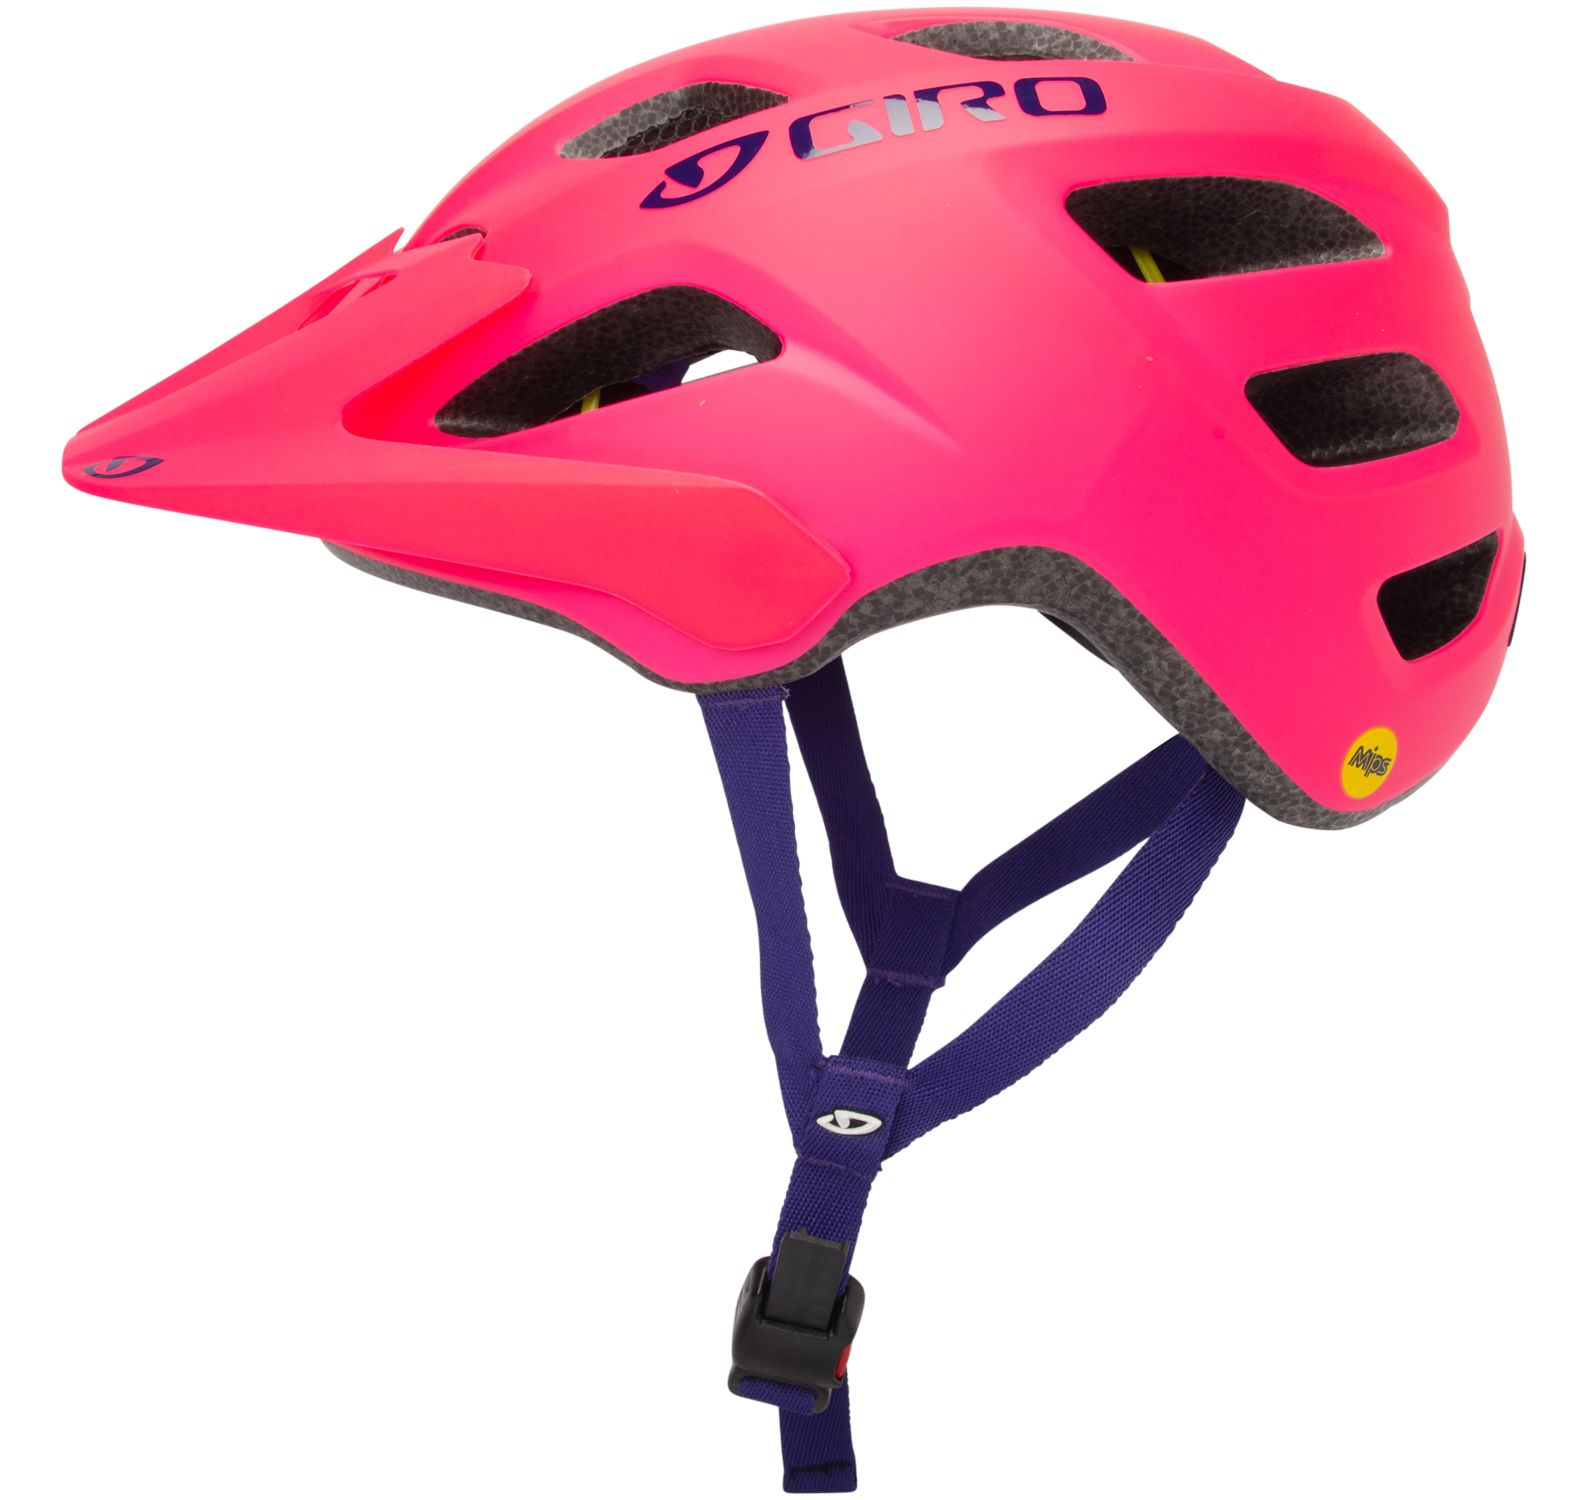 Tremor Mips, Mat Bright Pink, Os Youth,  Jo Sport